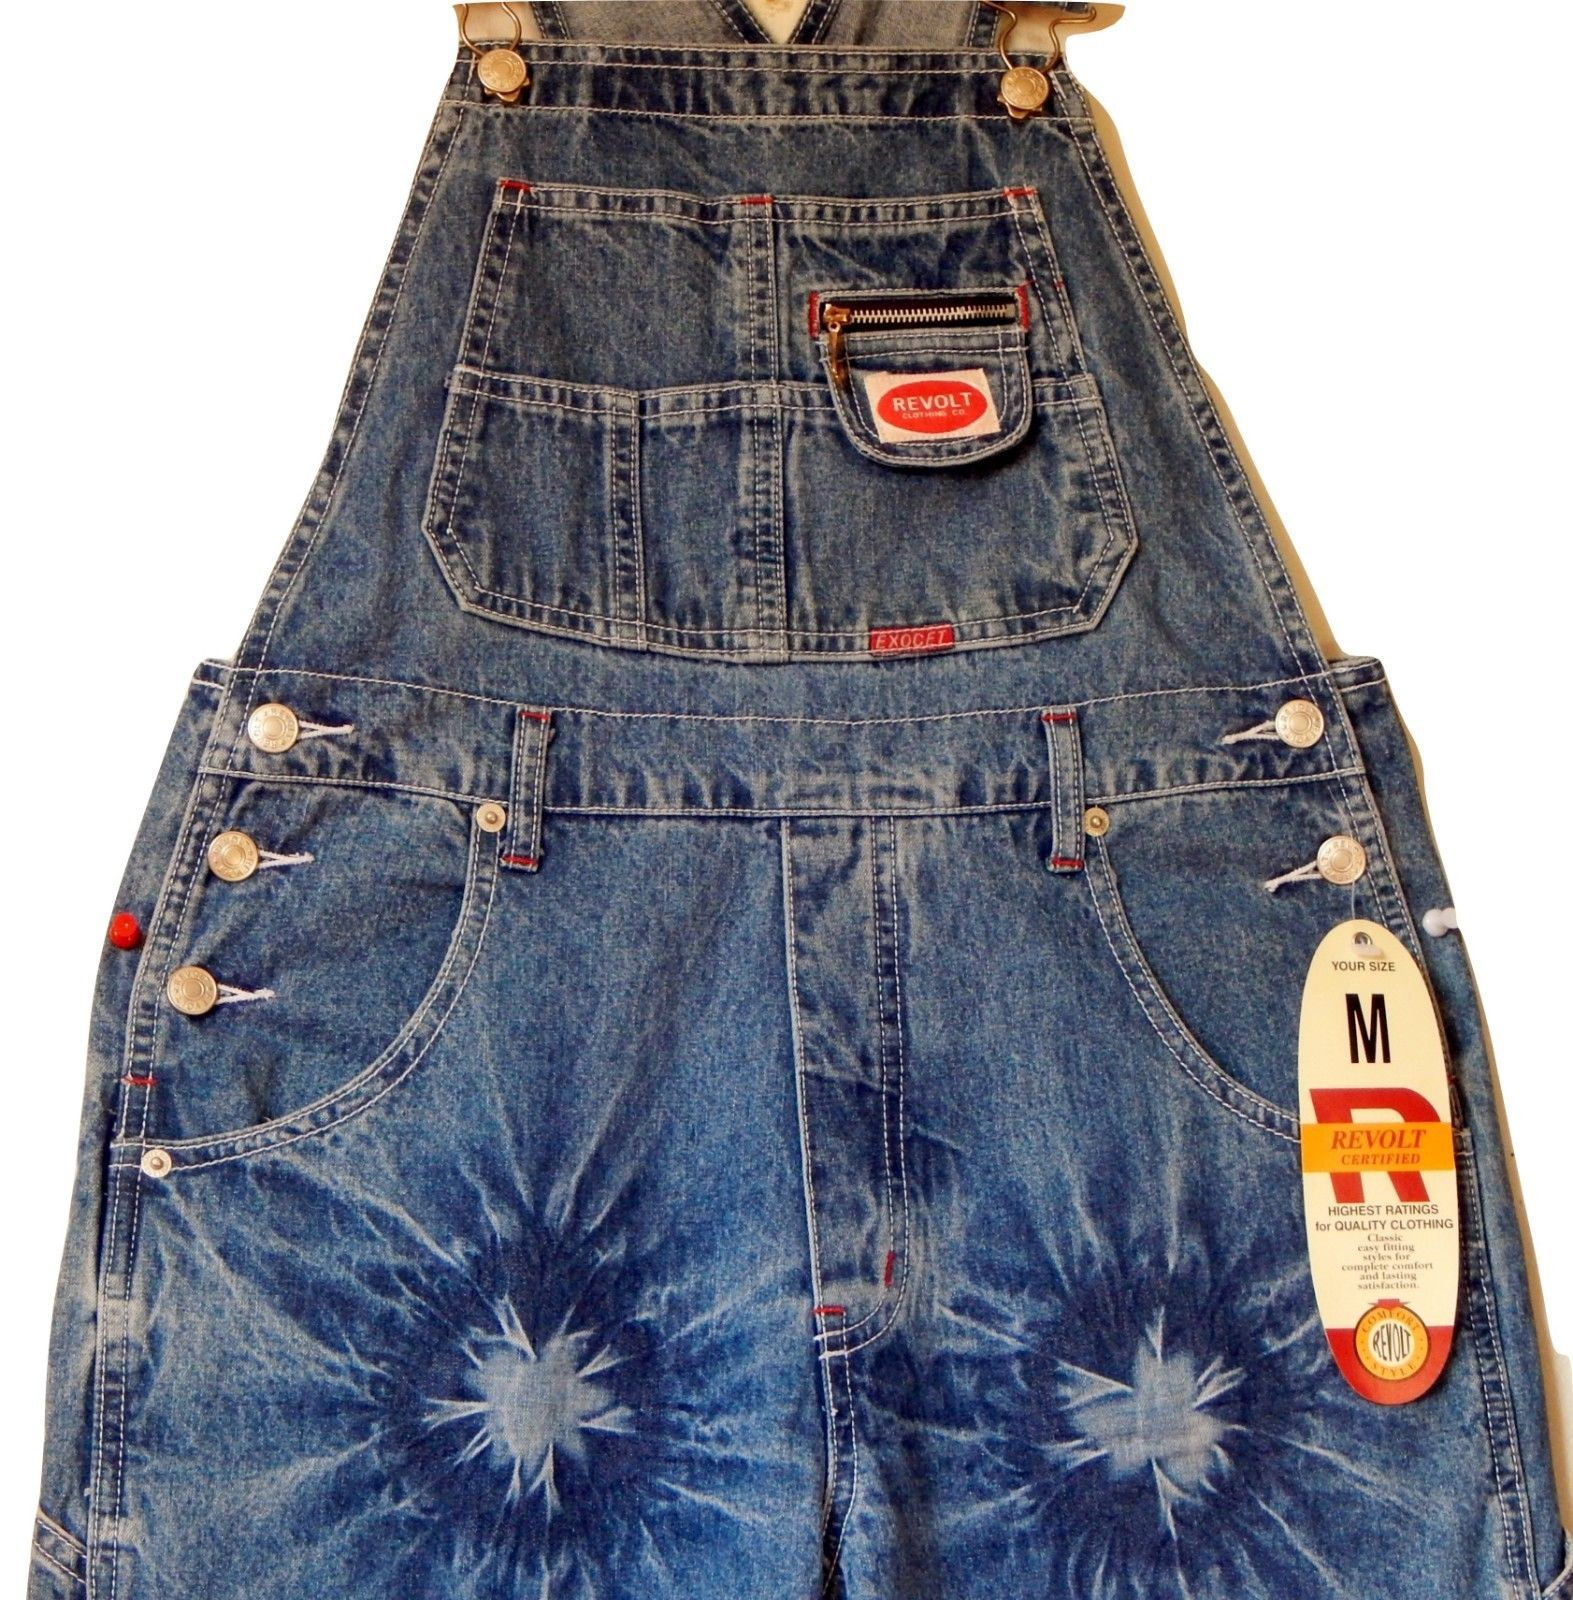 ddffbd2e ~REVOLT Classic Bib Overalls Tye Bleach Destressed Women's Size M Blue Denim